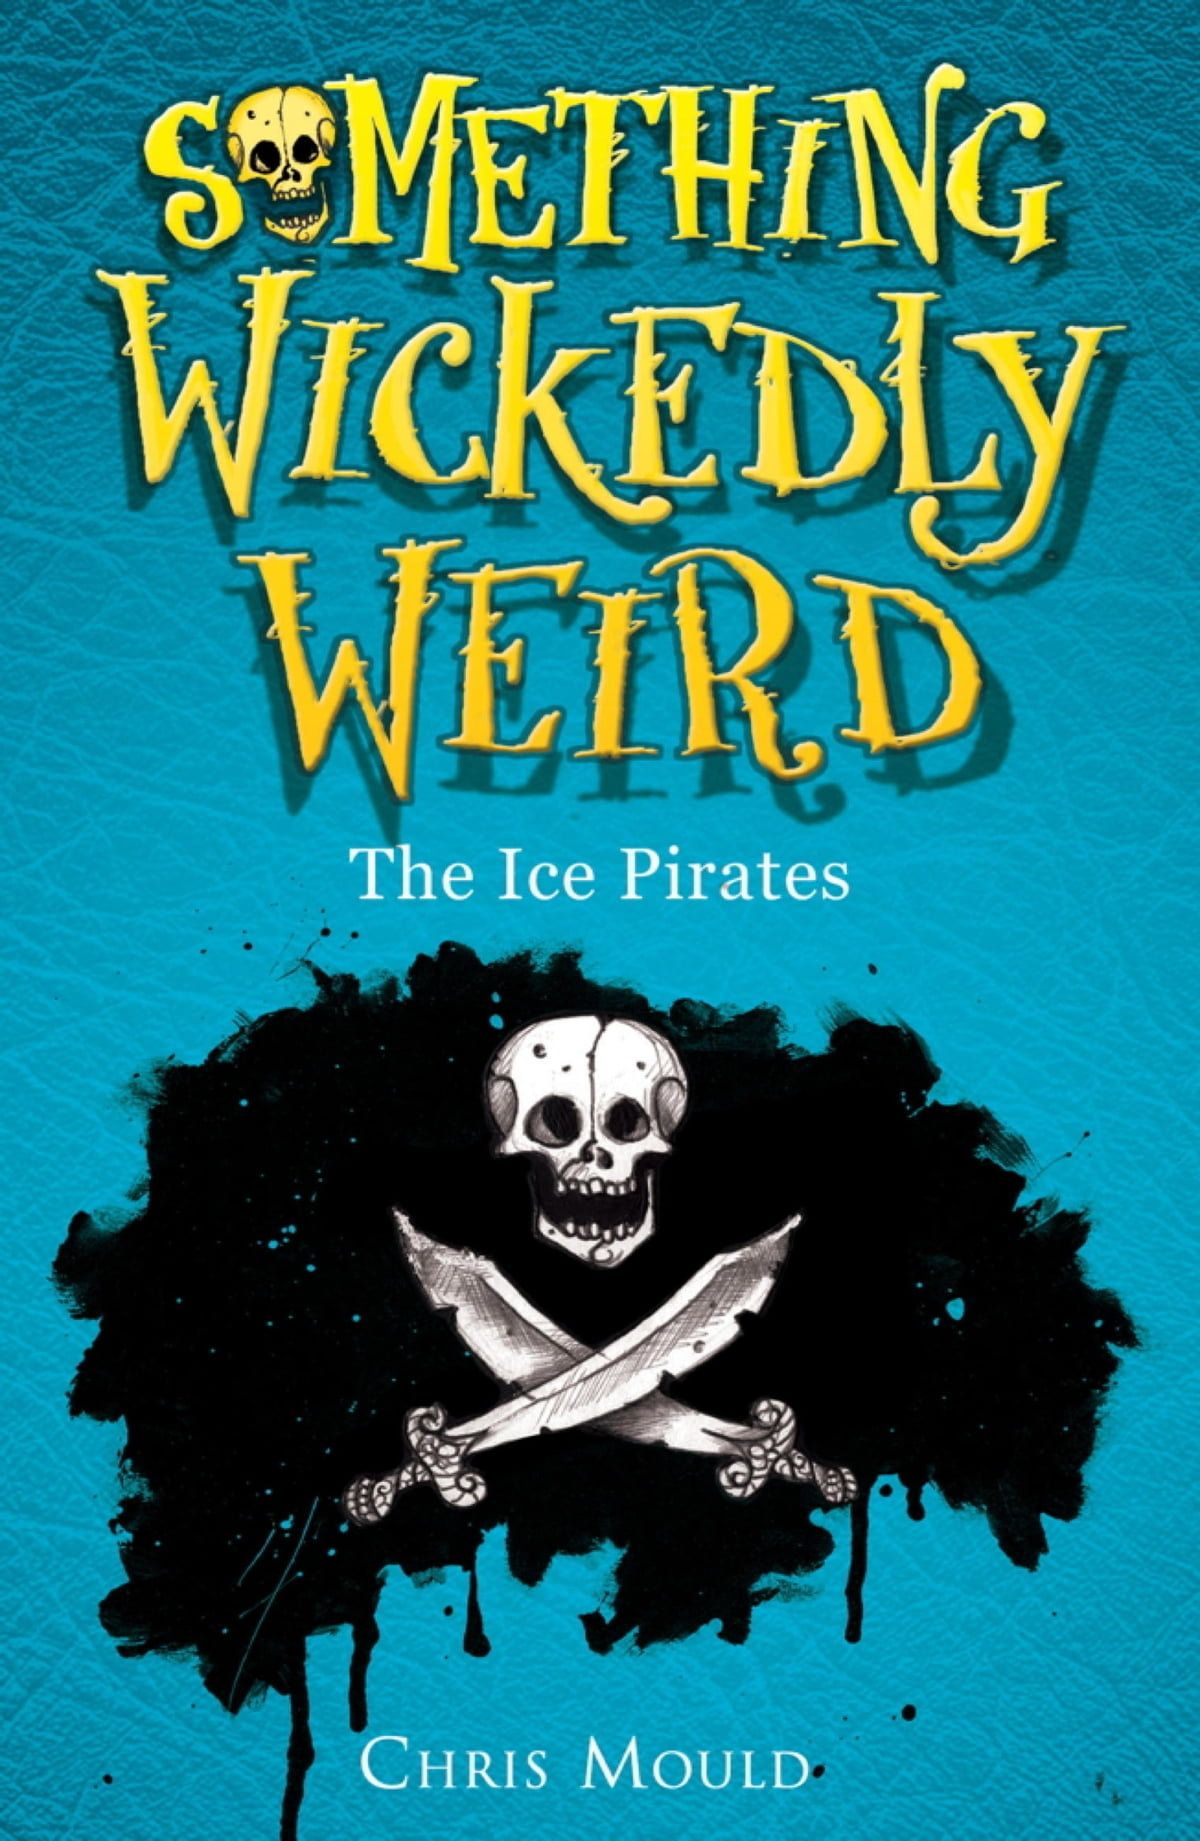 Something wickedly weird 2 the ice pirates ebook by chris mould something wickedly weird 2 the ice pirates ebook by chris mould 9781444904185 rakuten kobo fandeluxe Epub